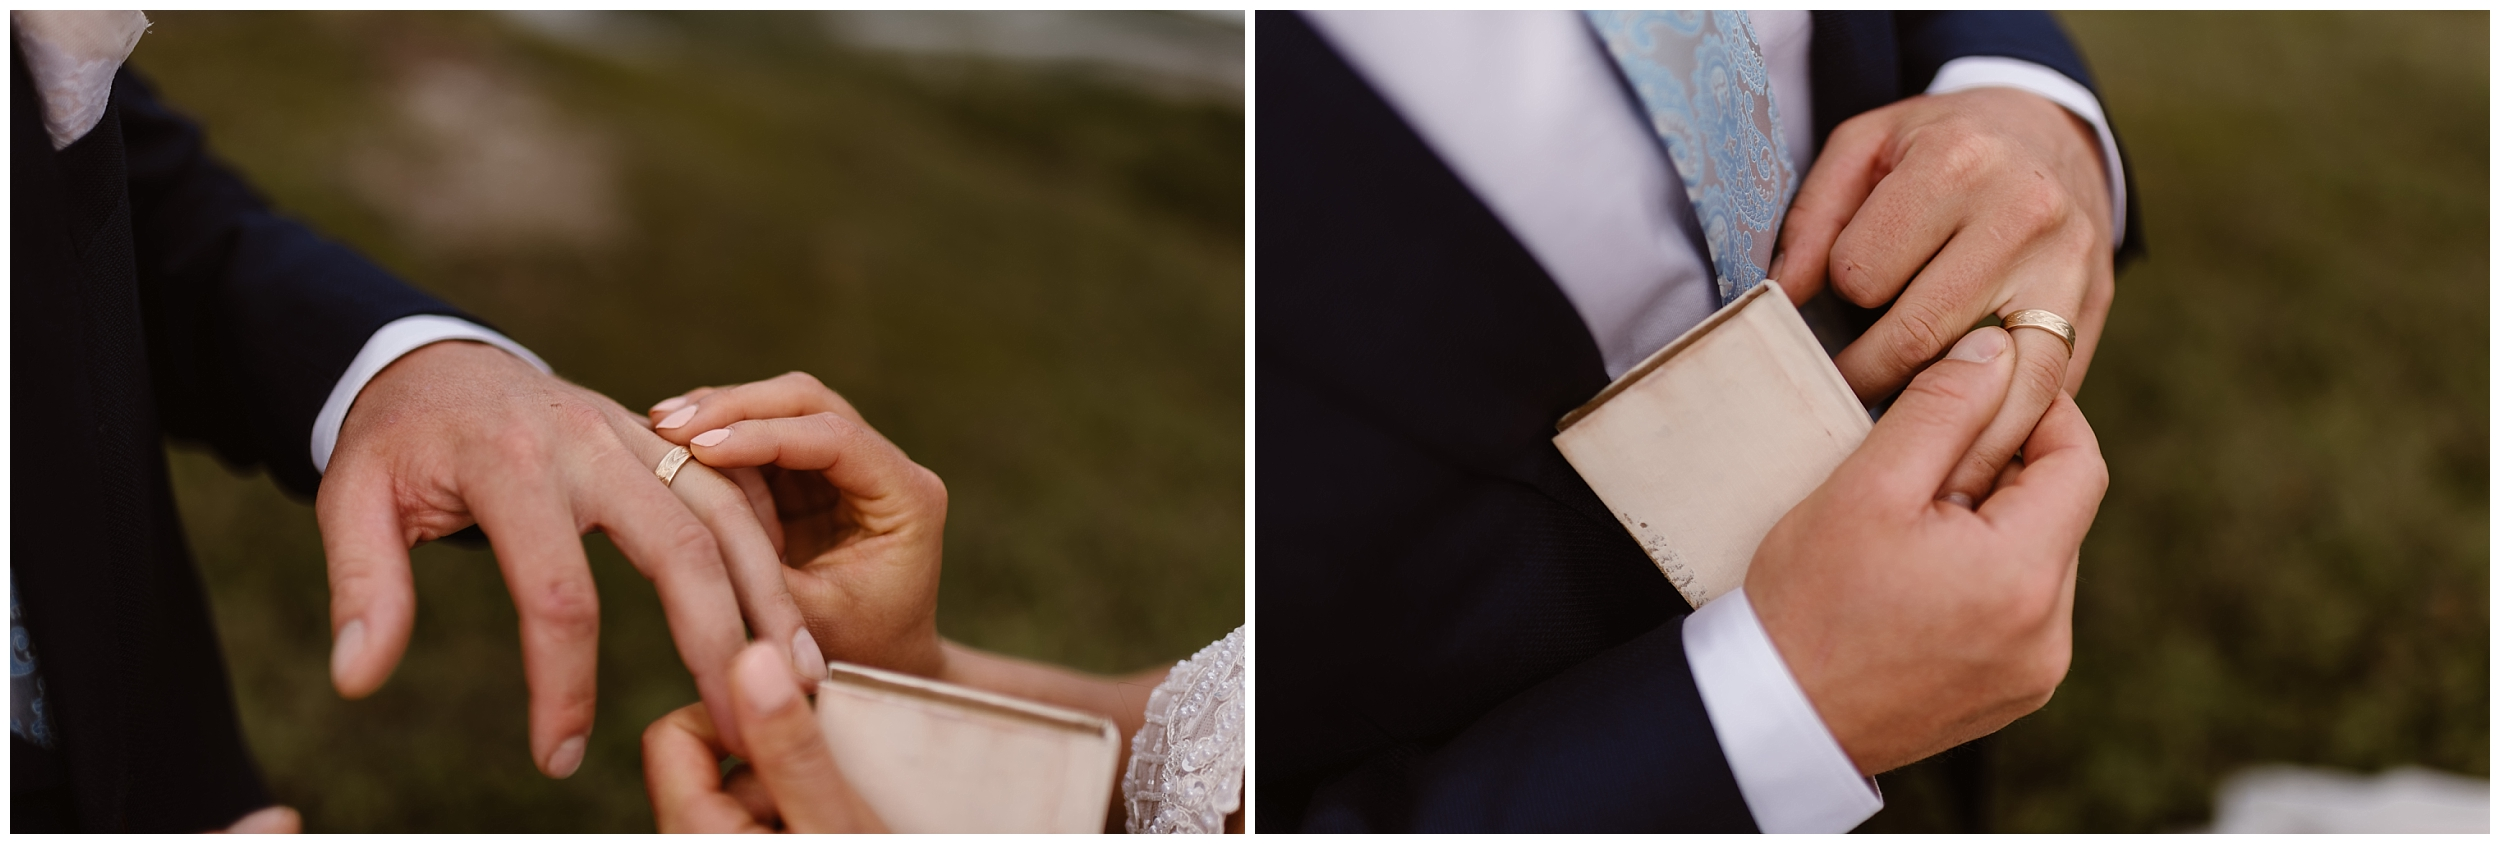 This image, composed of two side-by-side elopement photos, both show Connor's ring that Jordyn surprised him with. In the image on the left, Jordyn is placing the ring on Connor's finger. On the right side, Connor adjusts the ring to fit better on his finger. These elopement pictures were captured by Adventure Instead, Alaska wedding photographers.